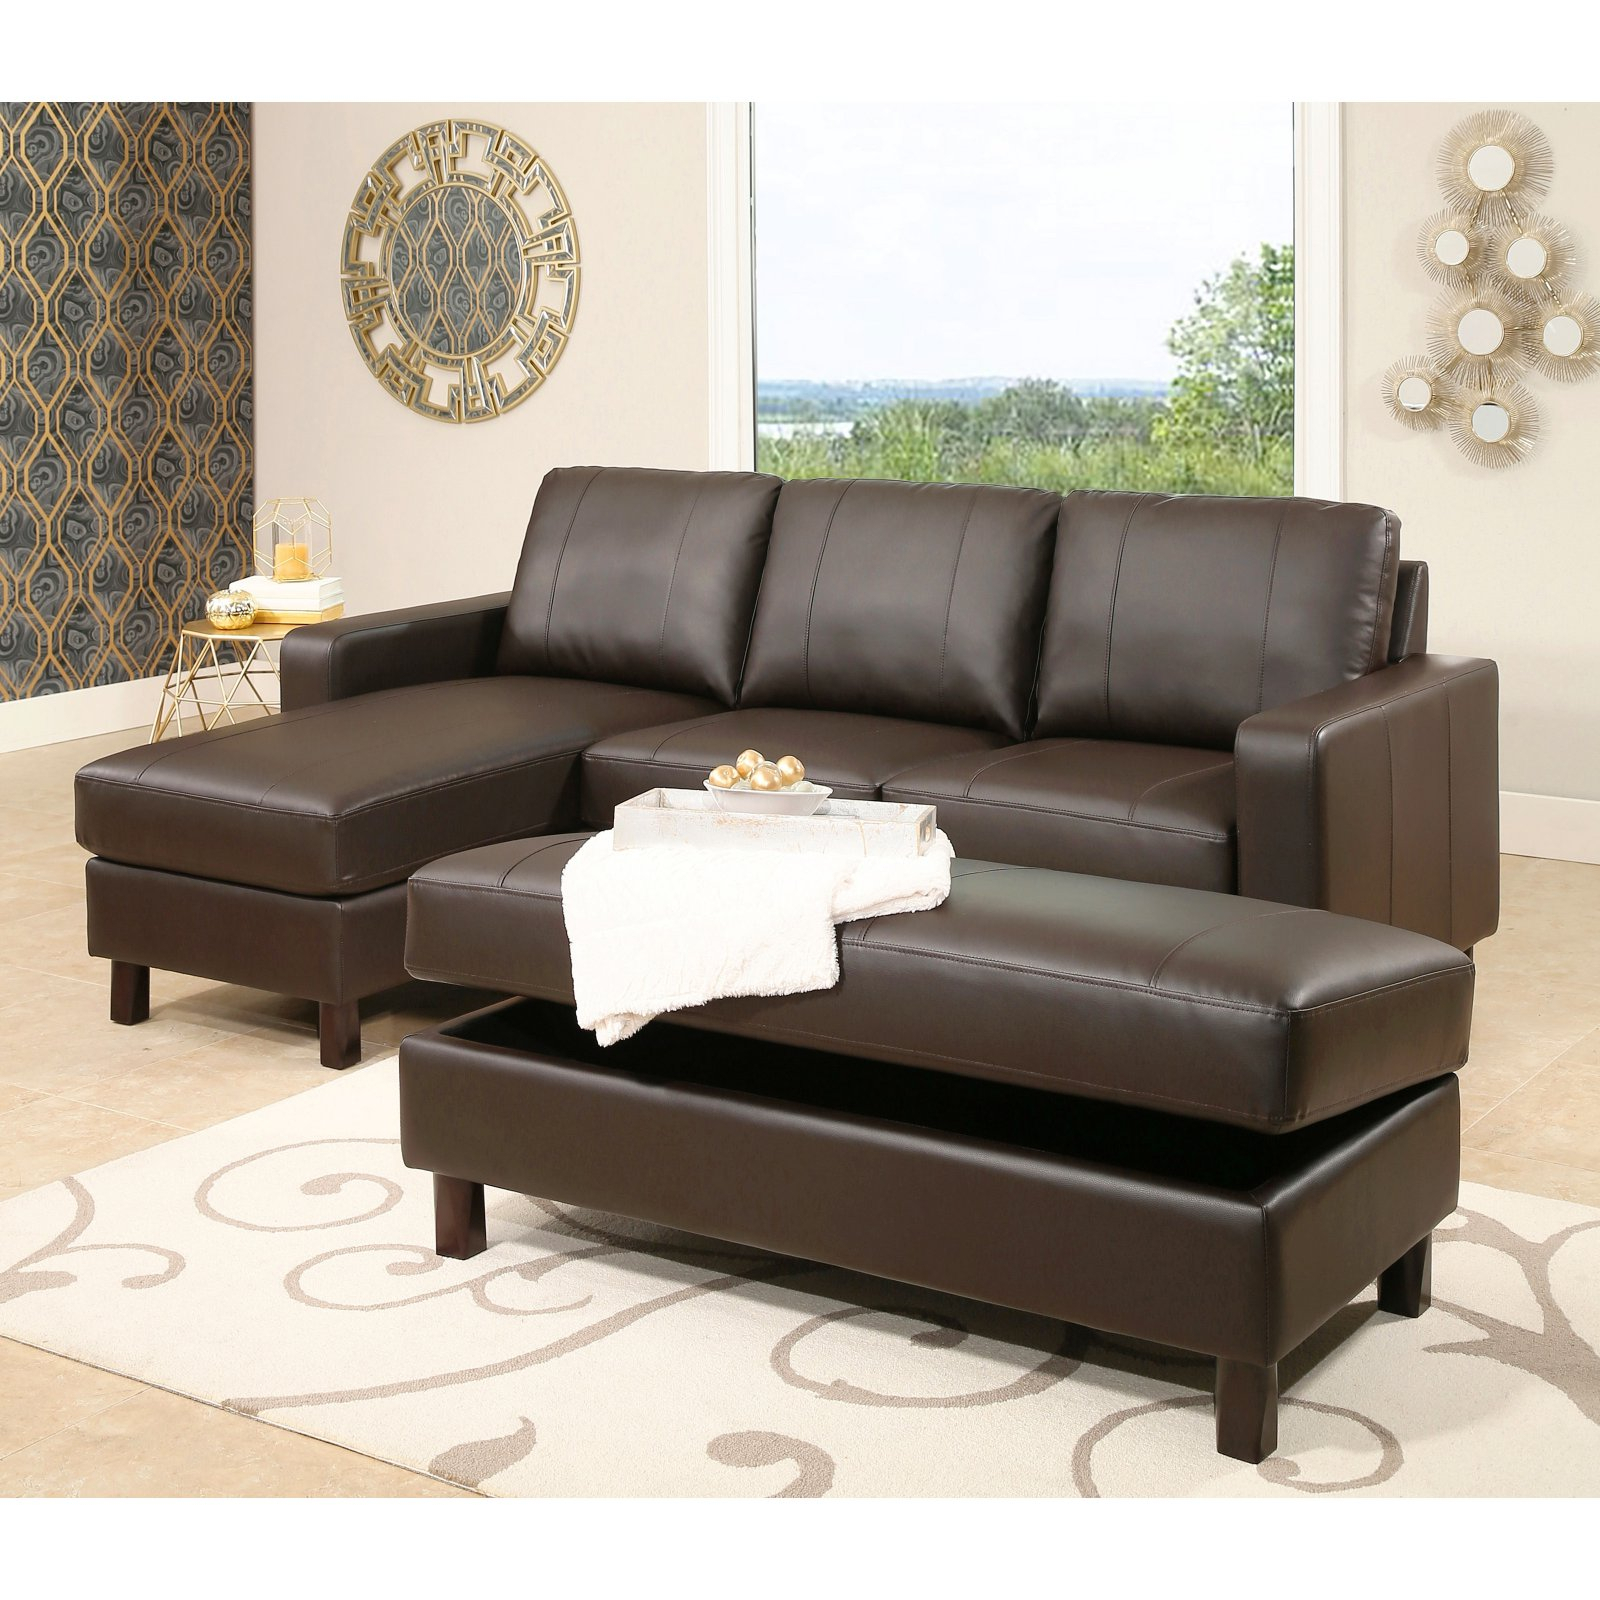 Abbyson Cedar Leather Reversible Sectional Sofa With Regarding Copenhagen Reversible Small Space Sectional Sofas With Storage (View 10 of 15)